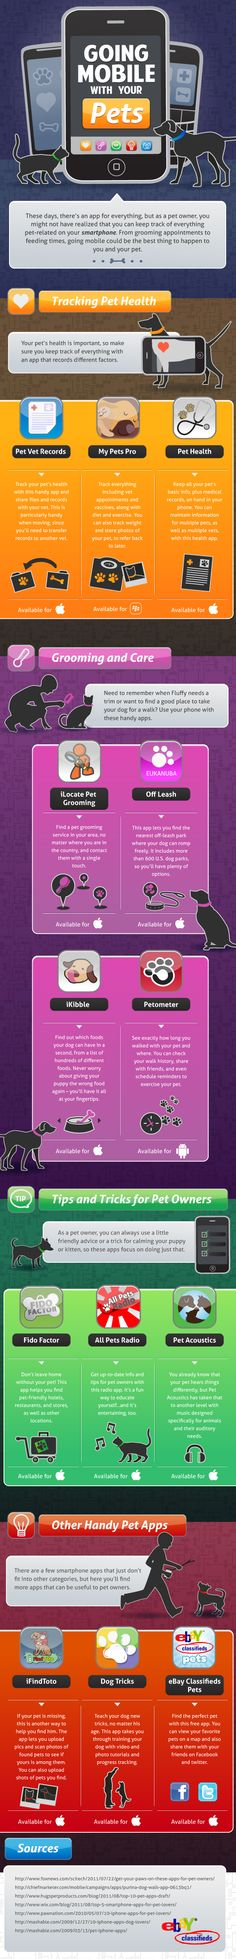 Pet tech; A great rundown of pets apps! http://mashable.com/2011/12/04/13-helpful-apps-for-pets/